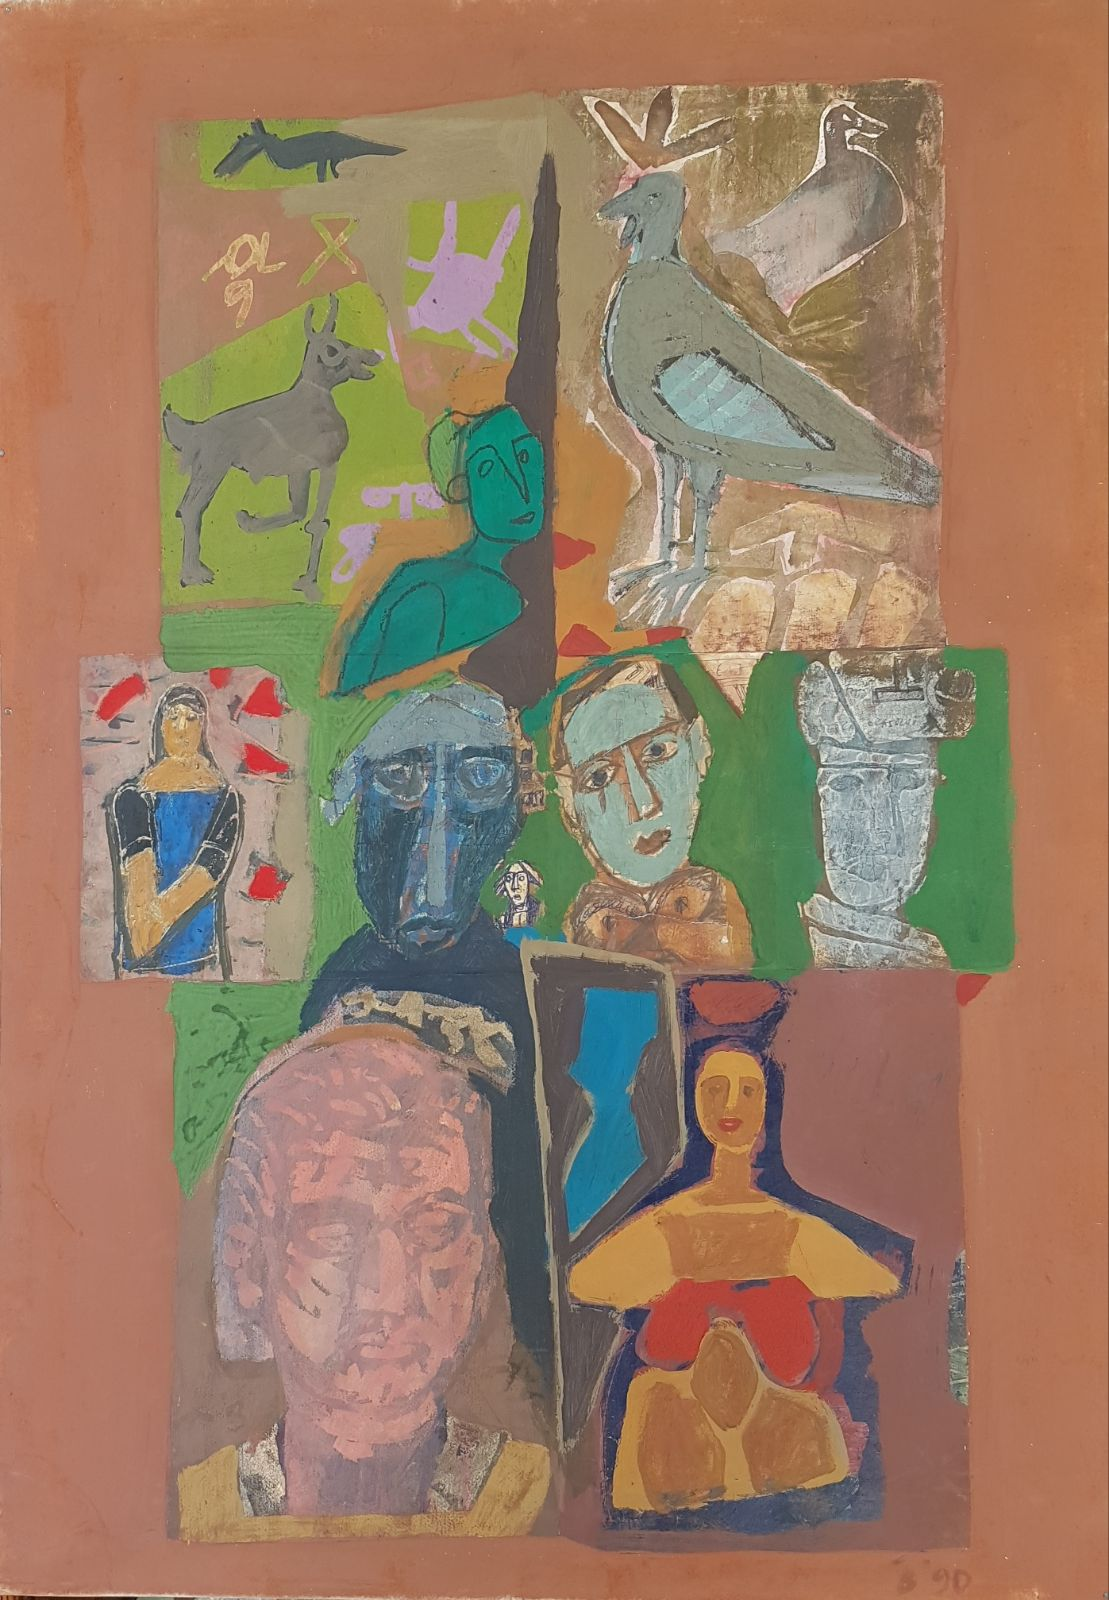 Colony Art Gallery  - Ilie Boca -Palimpsest 6 - mixed media on cardboard - 1990